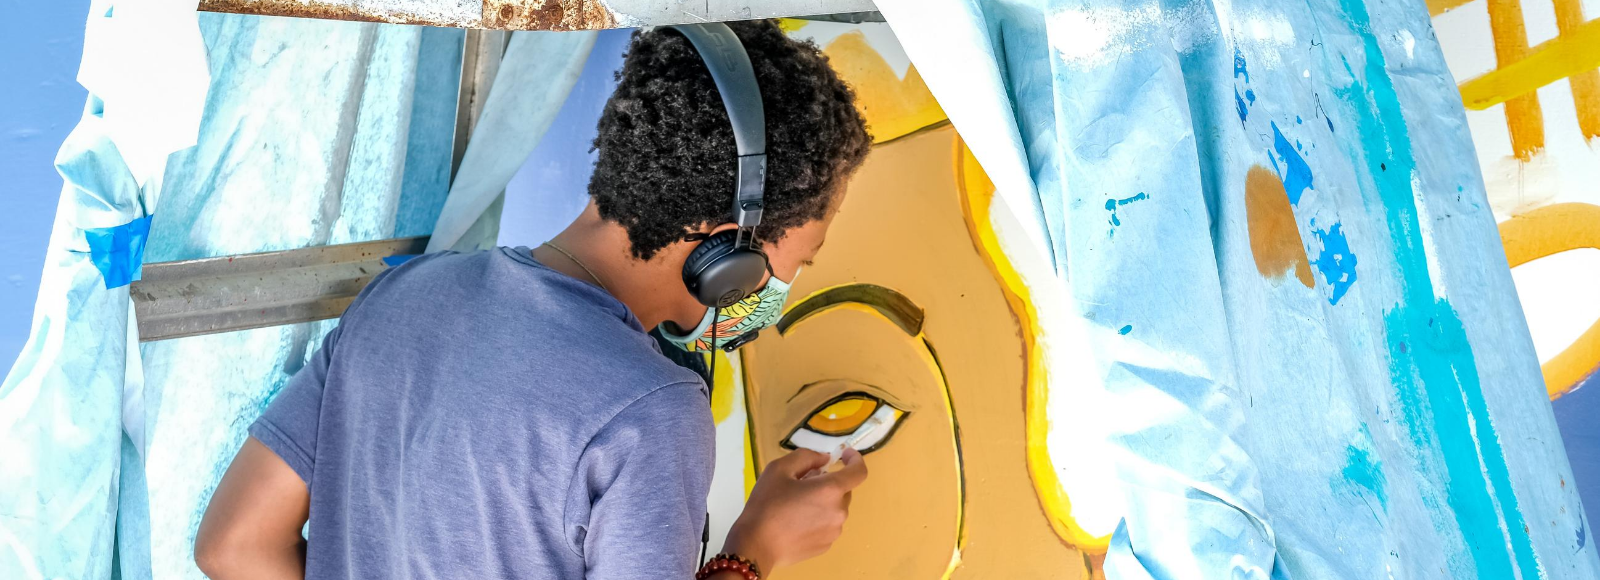 Two New Murals Spark Conversations on Representation